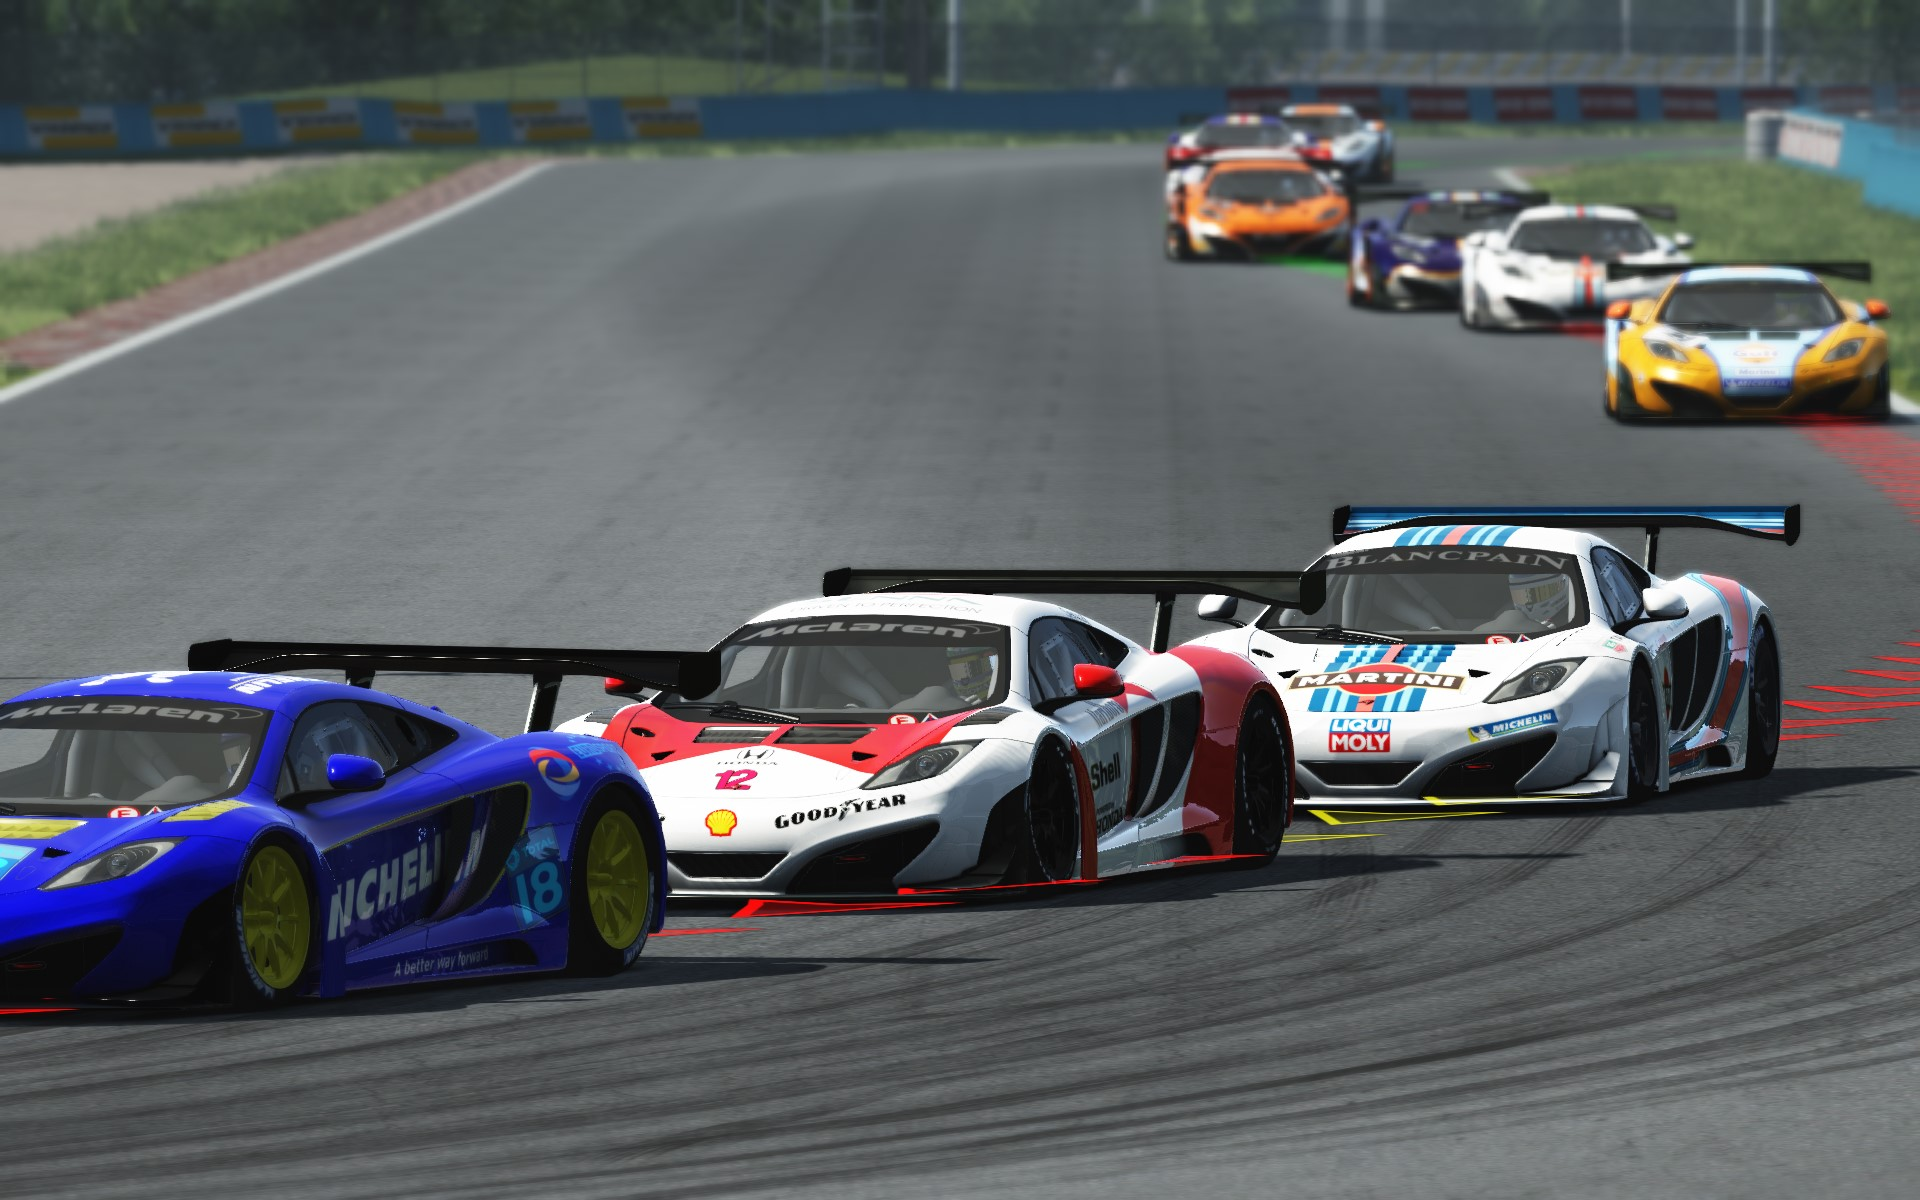 Screenshot_mclaren_mp412c_gt3_sentul_circuit_30-7-115-12-44-40.jpg